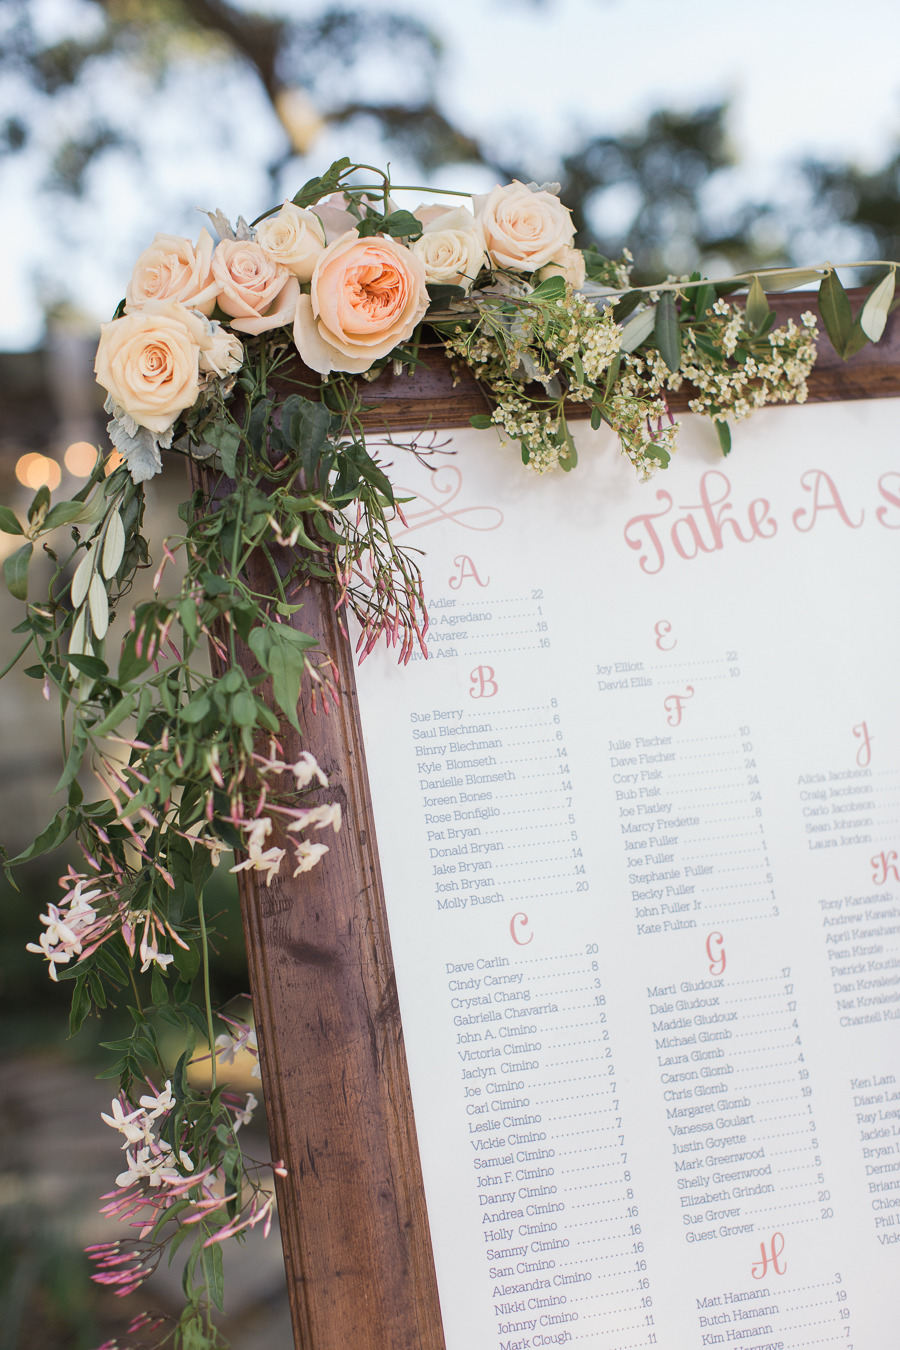 Detail of the Seating Chart we created for the wedding.   Photo by Carlie Statsky.